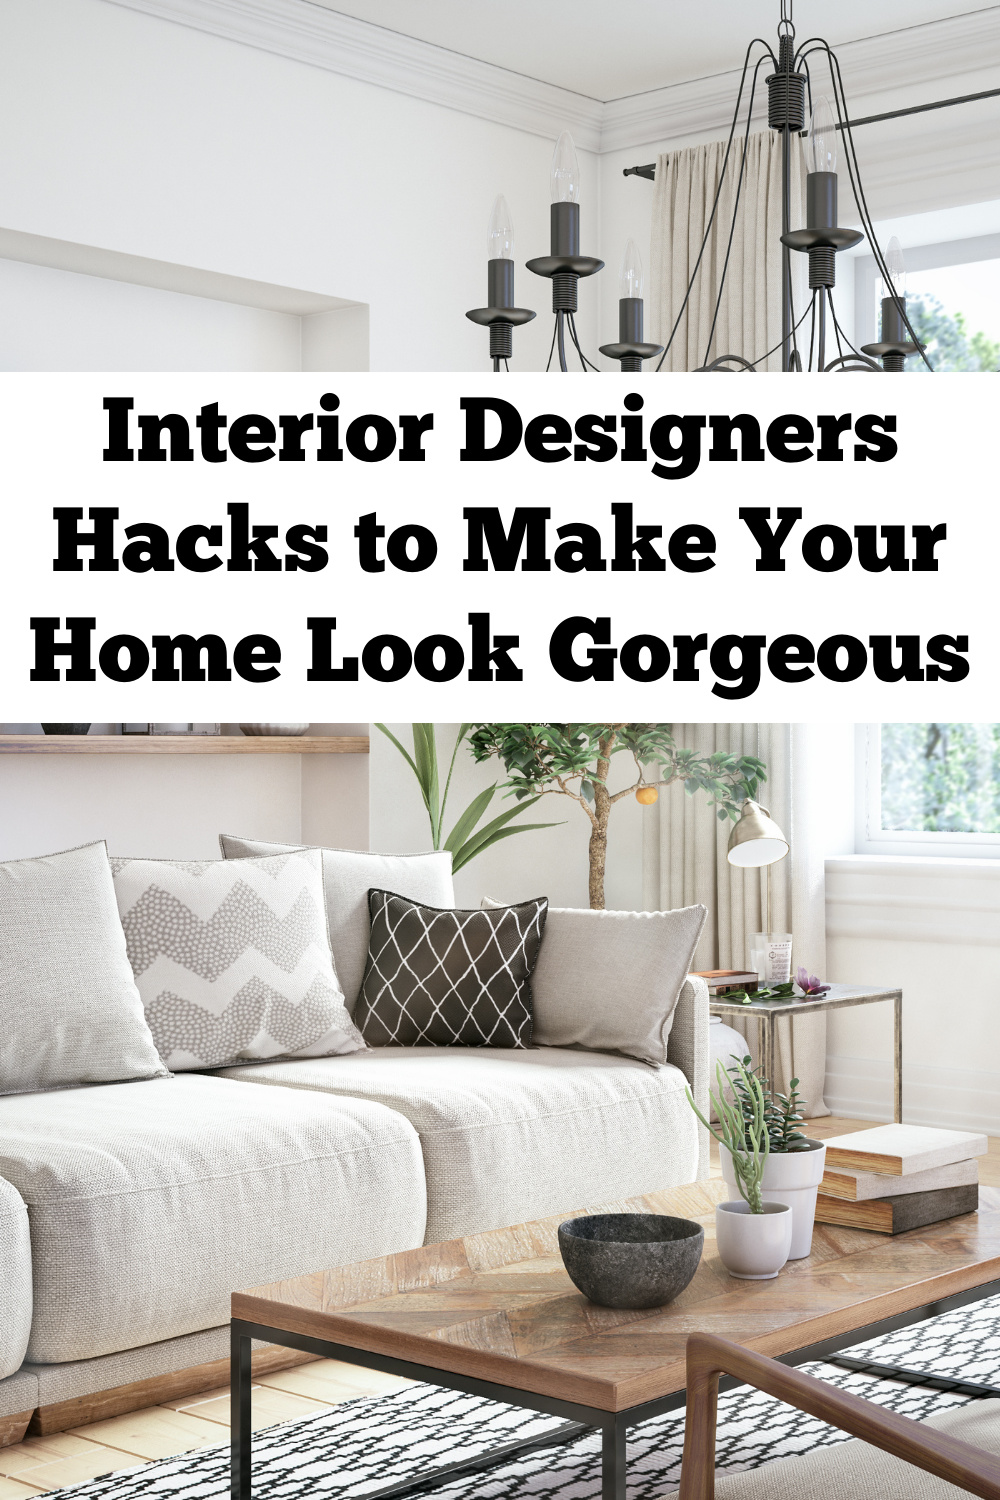 Interior Designers Hacks to Make Your Home Look Gorgeous